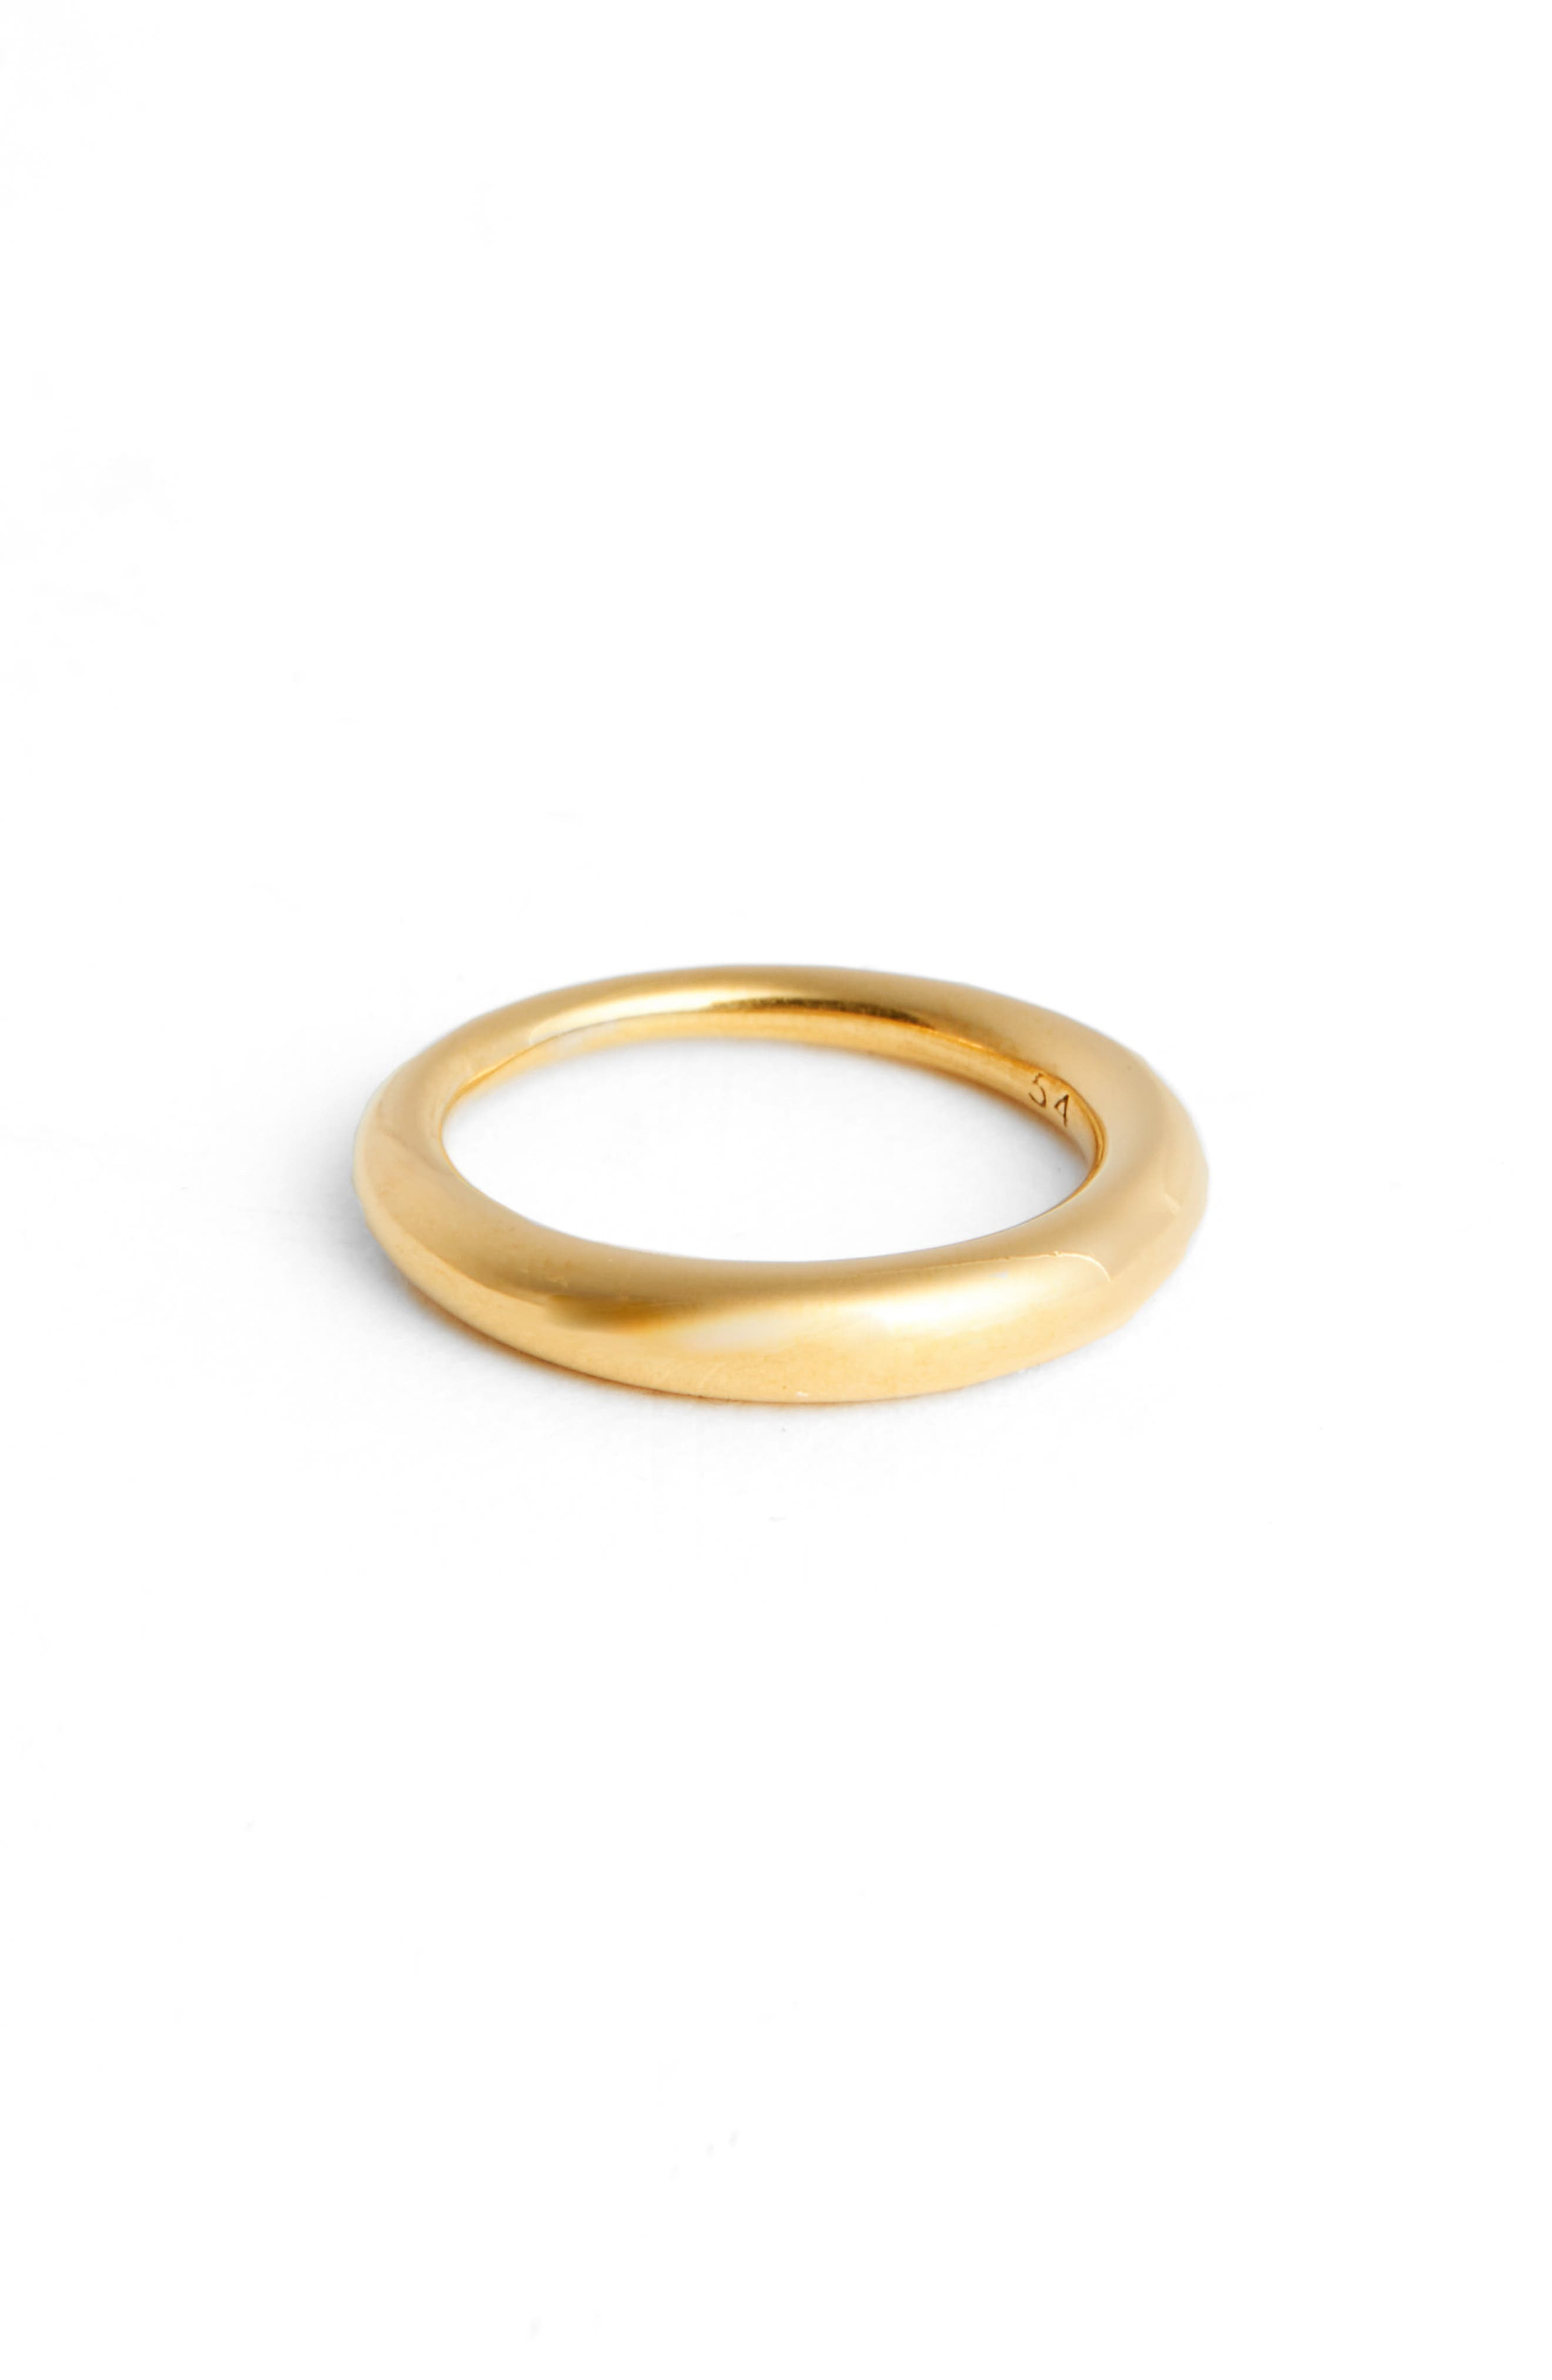 Small Snake Polished Silver Ring,                         Main,                         color, Gold Vermeil